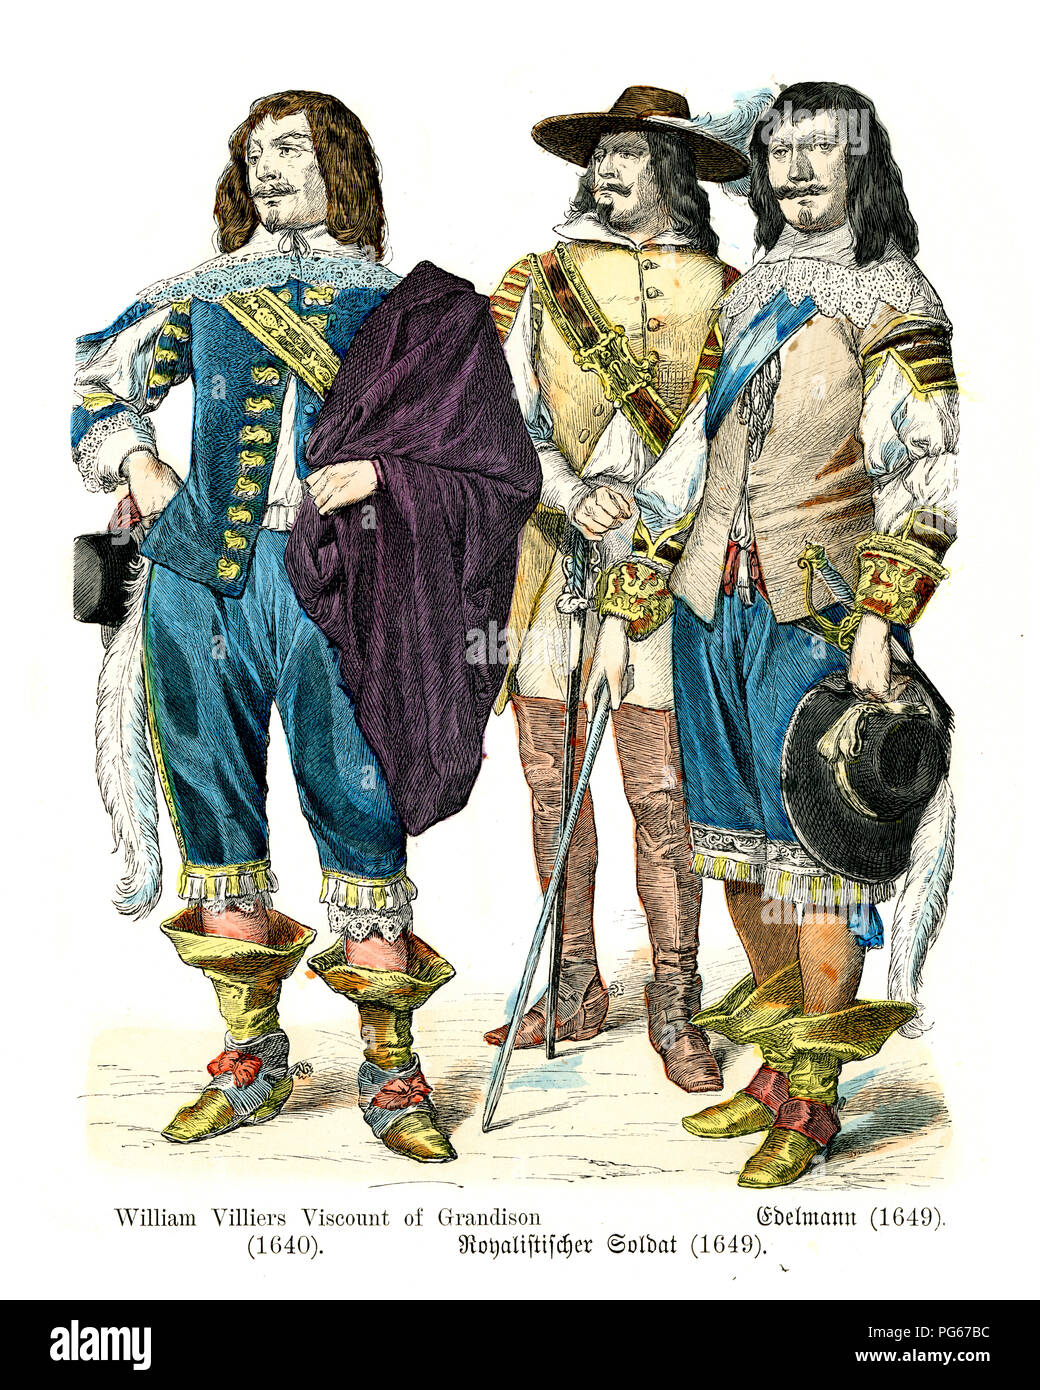 Fashion of  mid 17th Century England.  William Villiers, Viscount of Grandison, Roylist Soldier, Nobleman 1649 - Stock Image